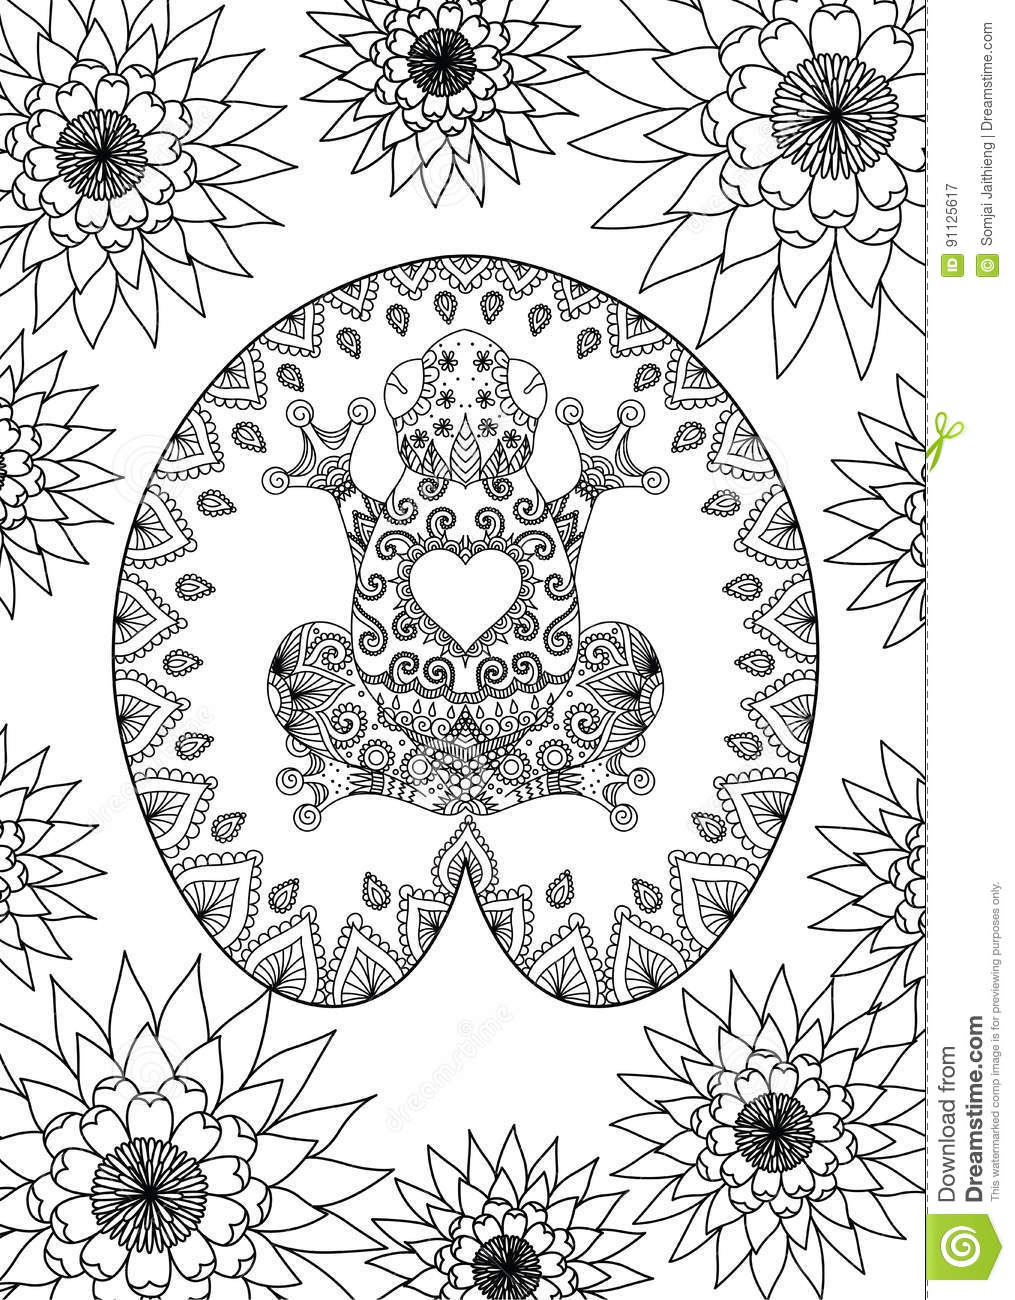 Lotus designs coloring book - Royalty Free Vector Download Hand Drawn Zentangle Frog Sitting On The Lotus Leaf Design For Adult Coloring Book Page